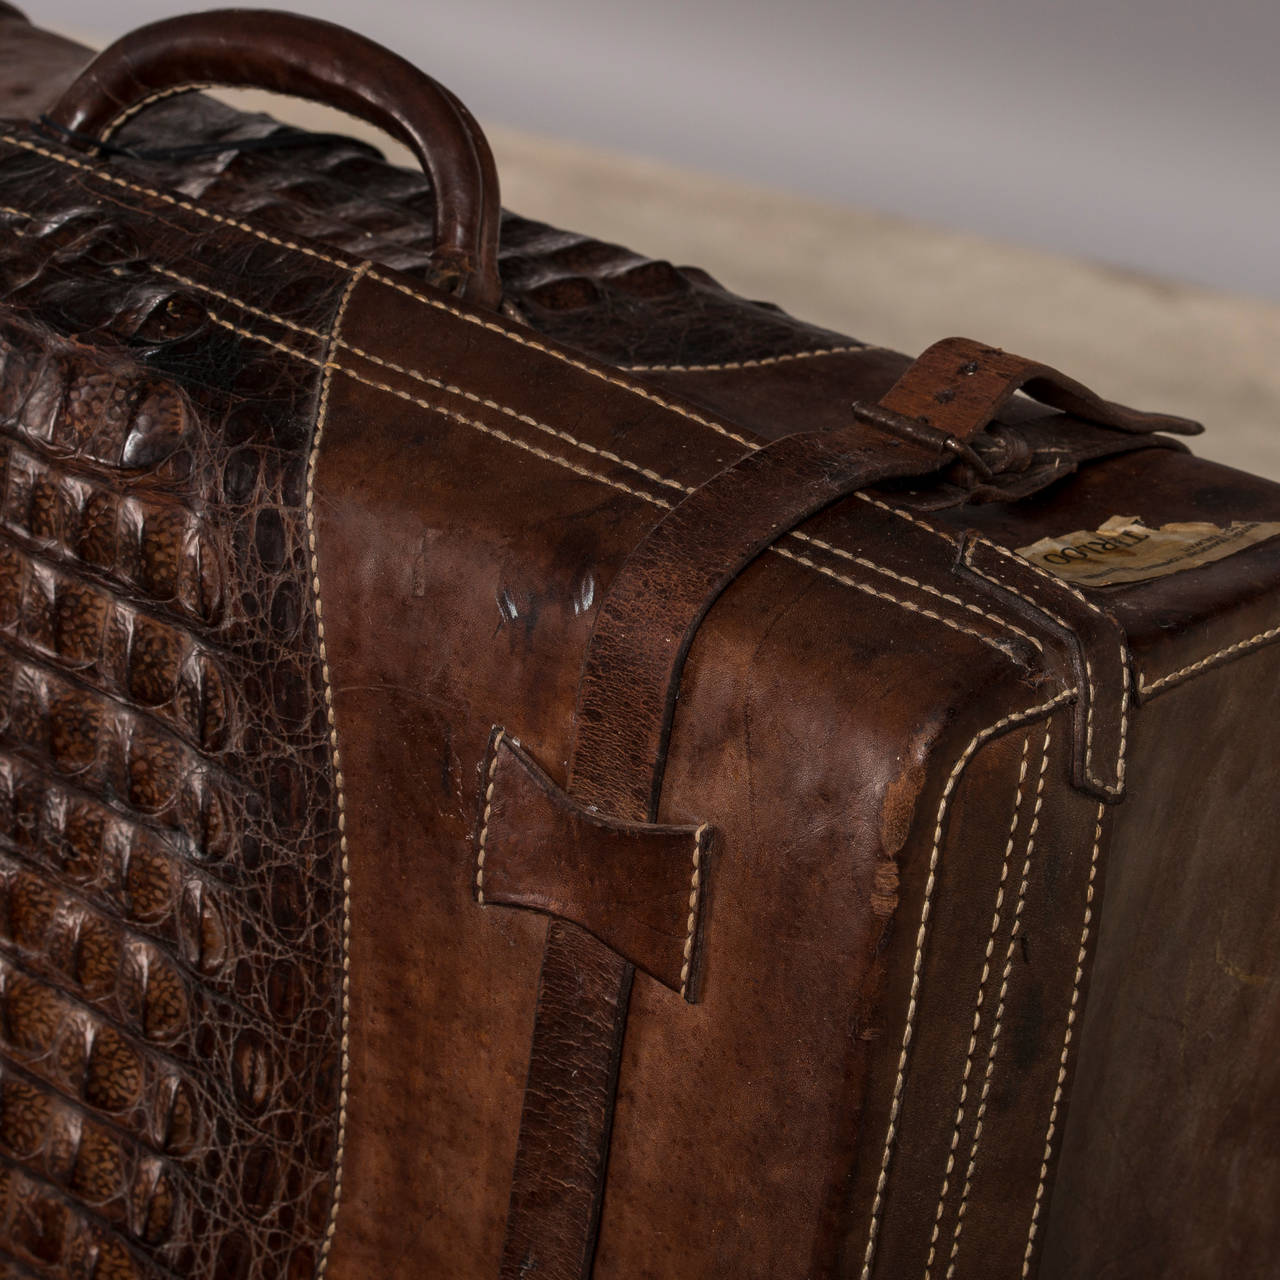 Set of Suitcases with Beautiful Patina, Uruguay 1920-1930 2